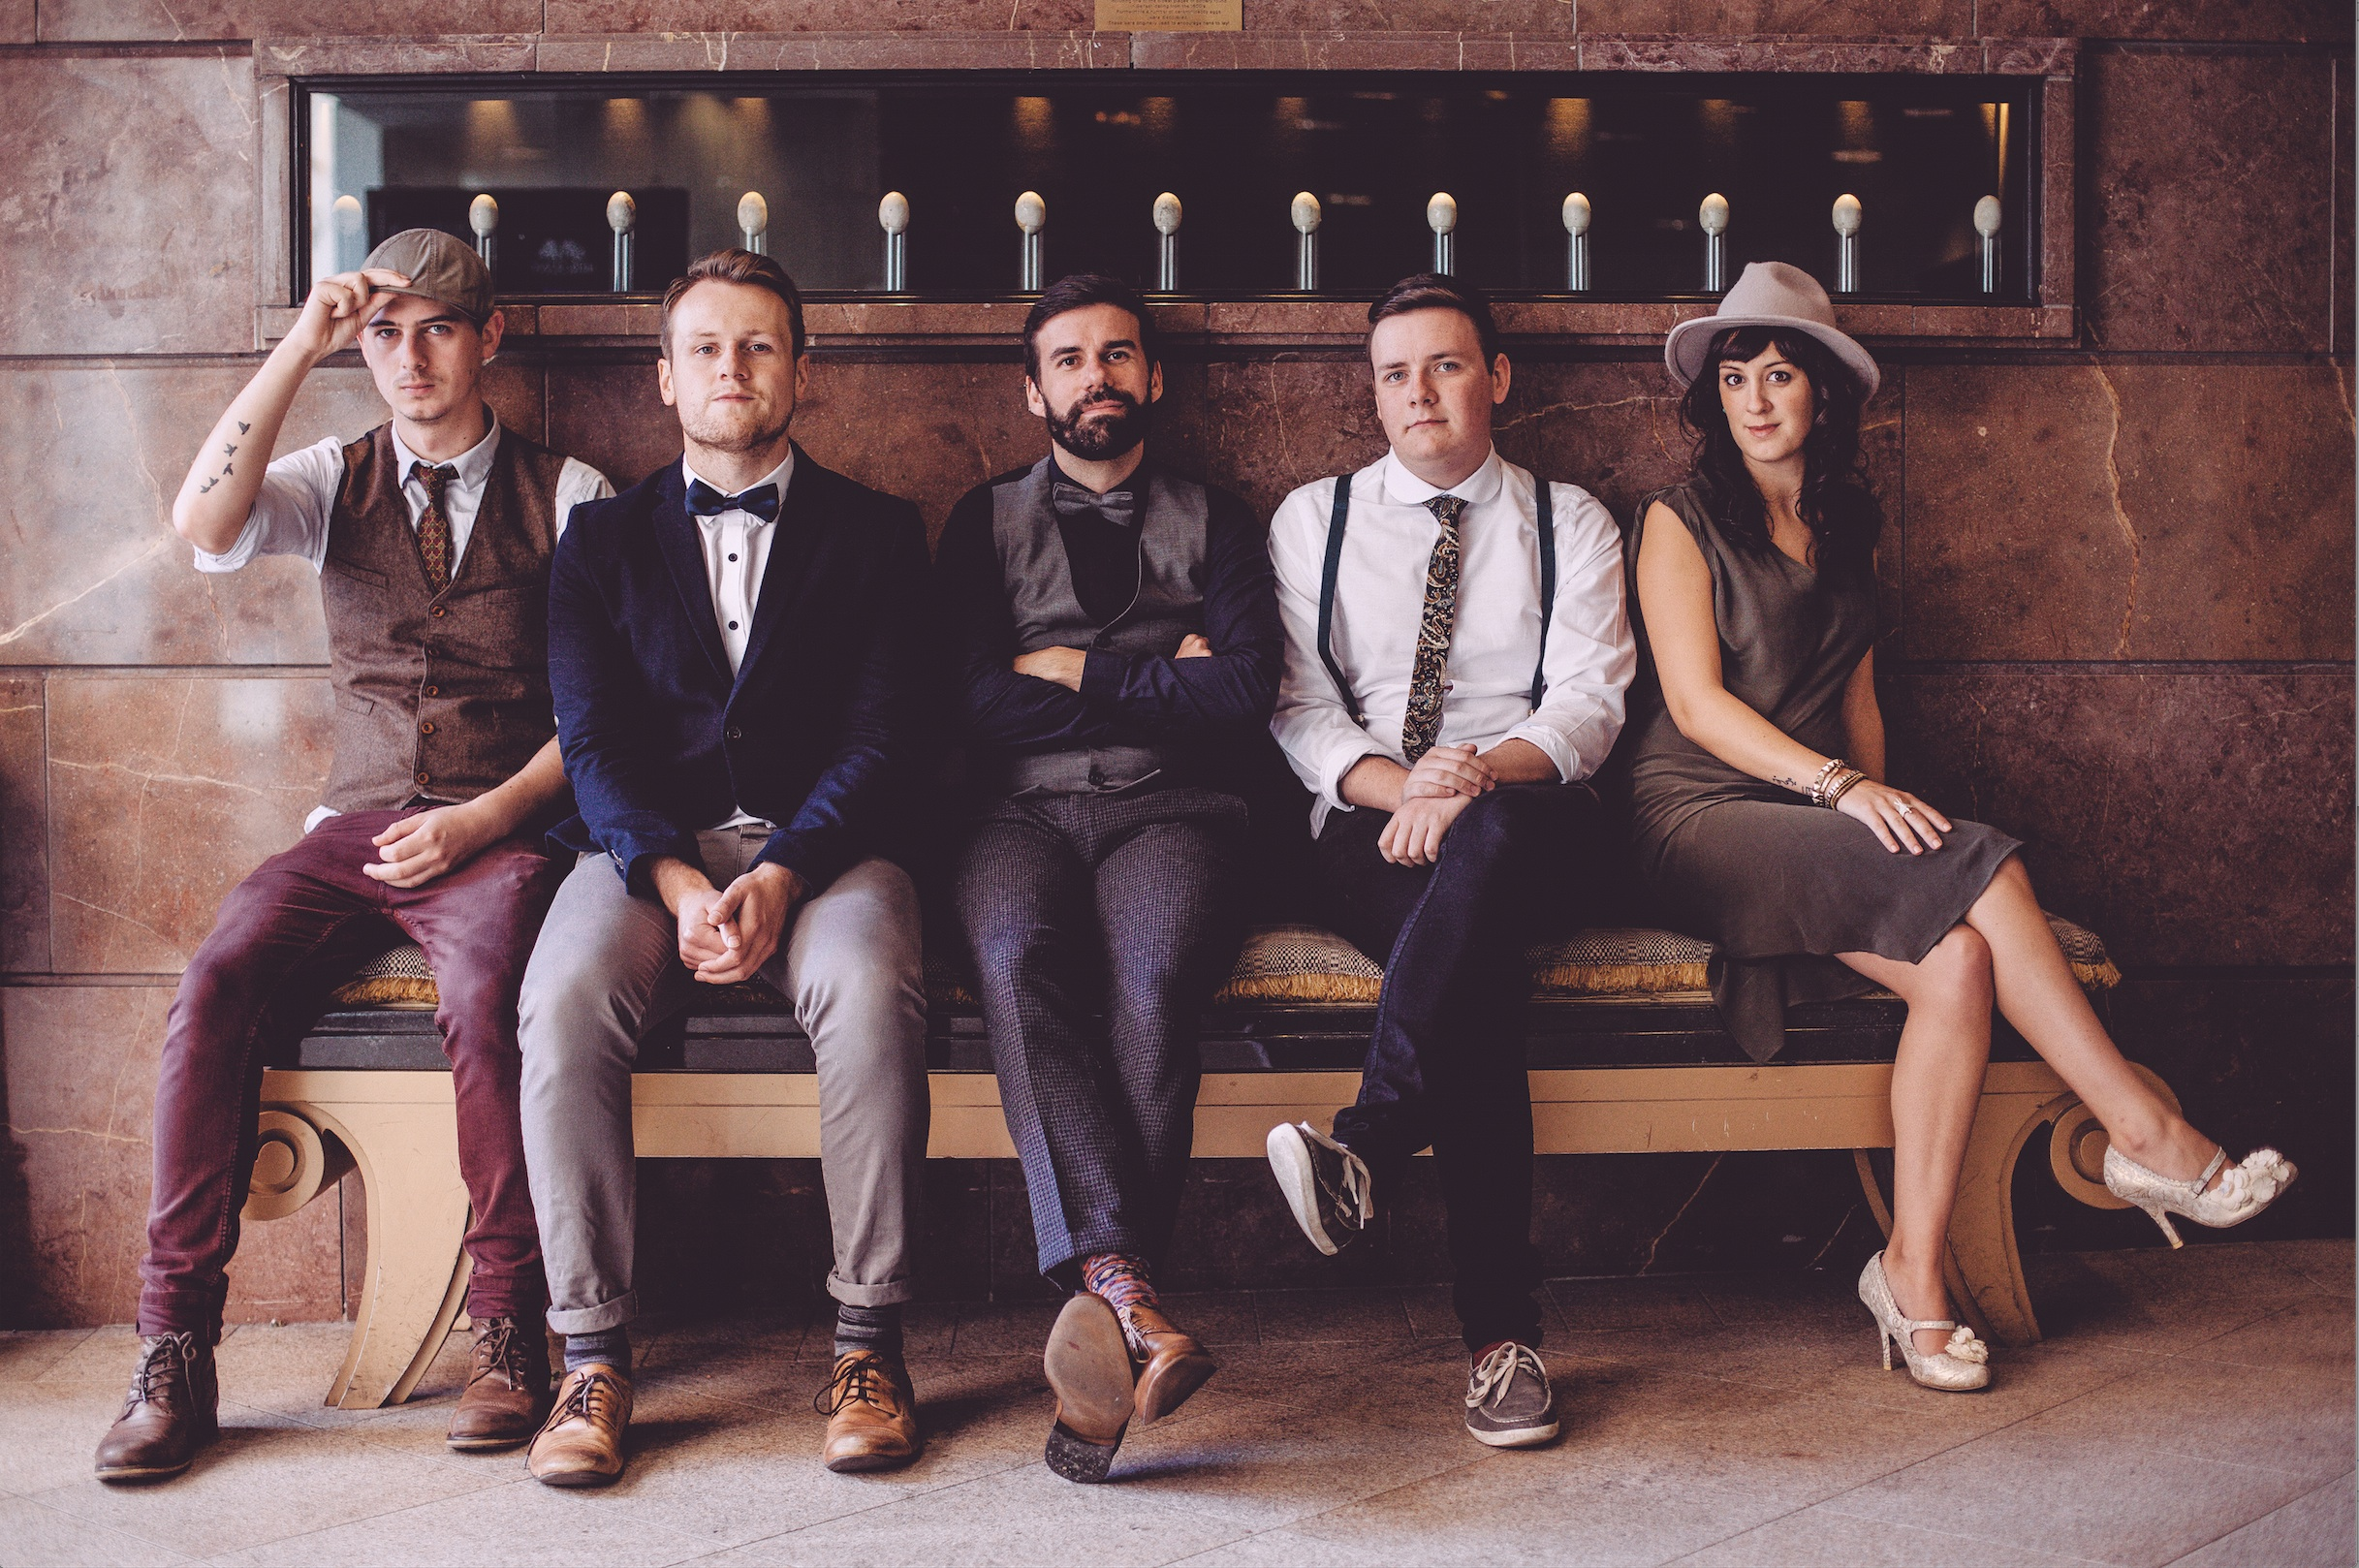 Bench Press Shot Rend Collective